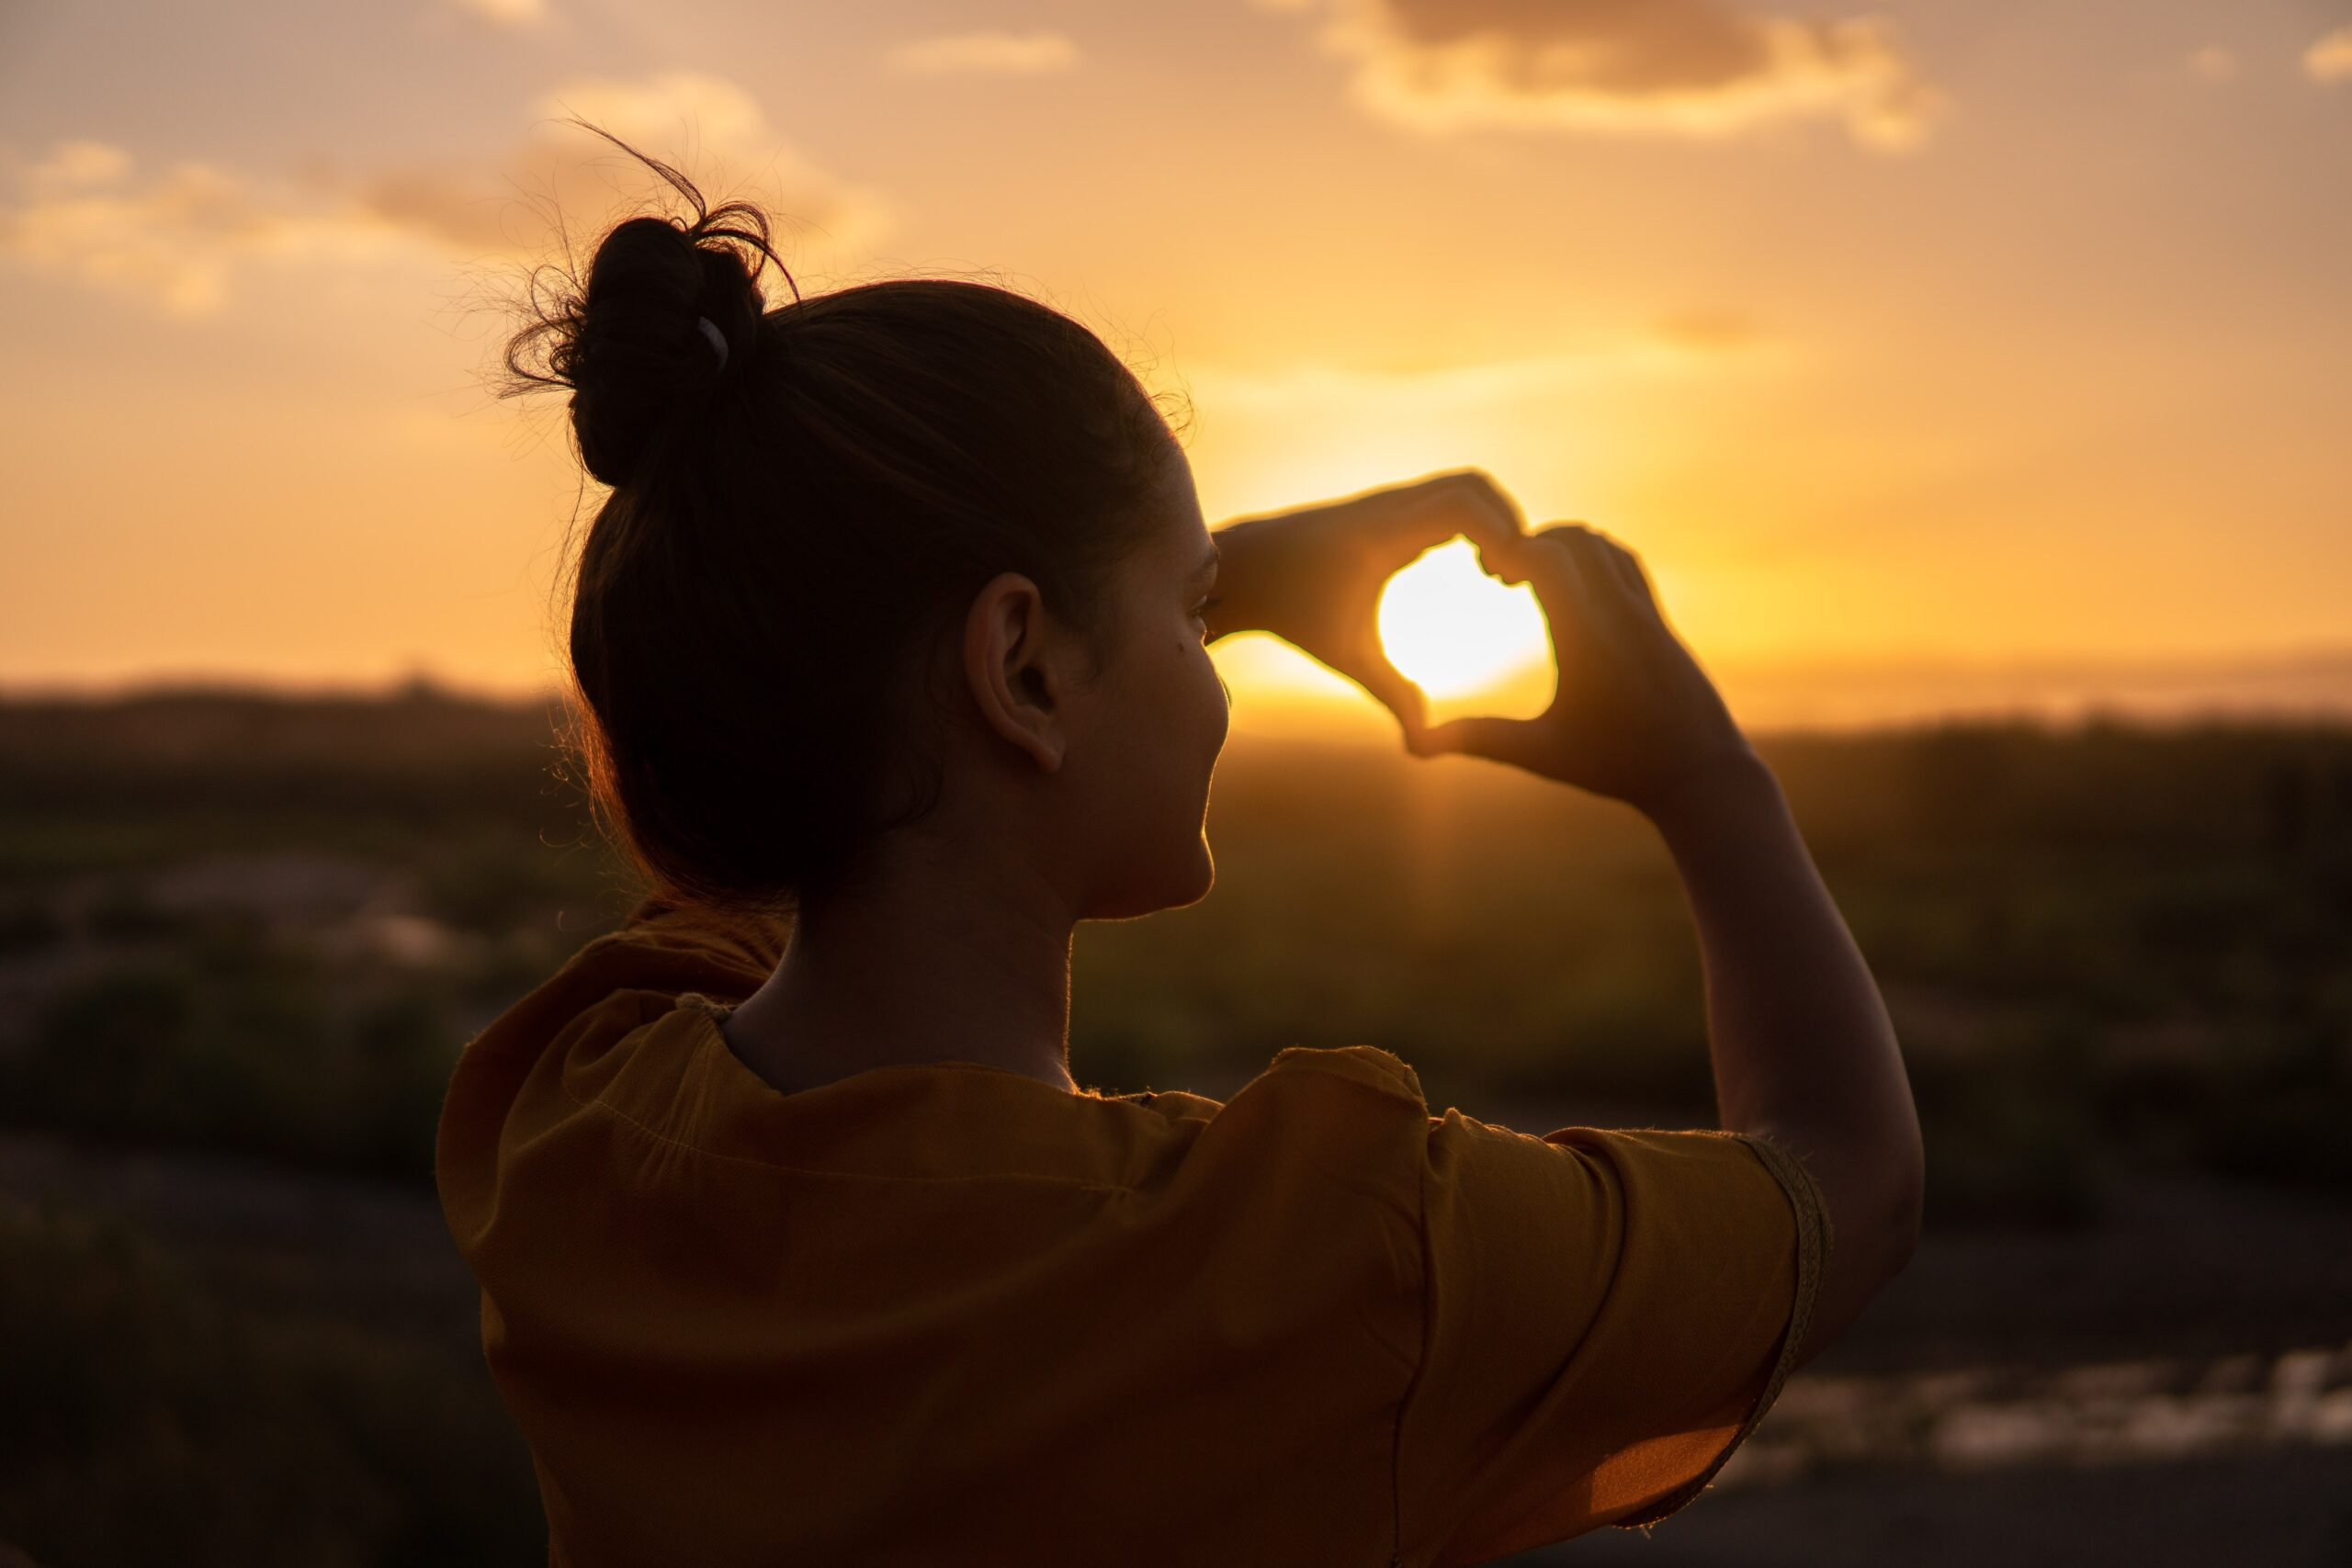 Women forming a heart shape with her hands in front of a sunrise